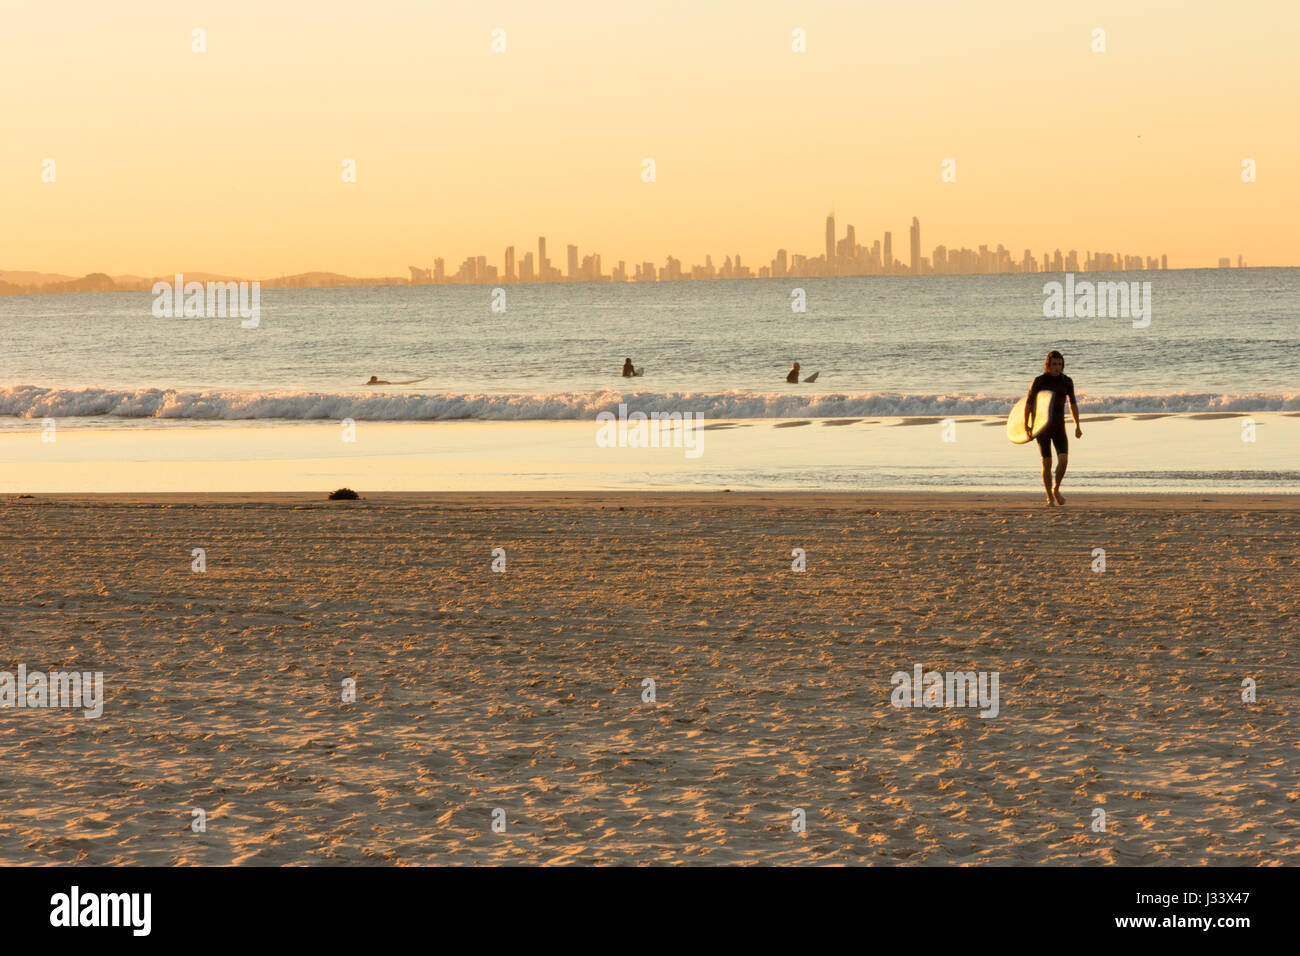 surfer-walks-away-from-the-sea-on-coolan